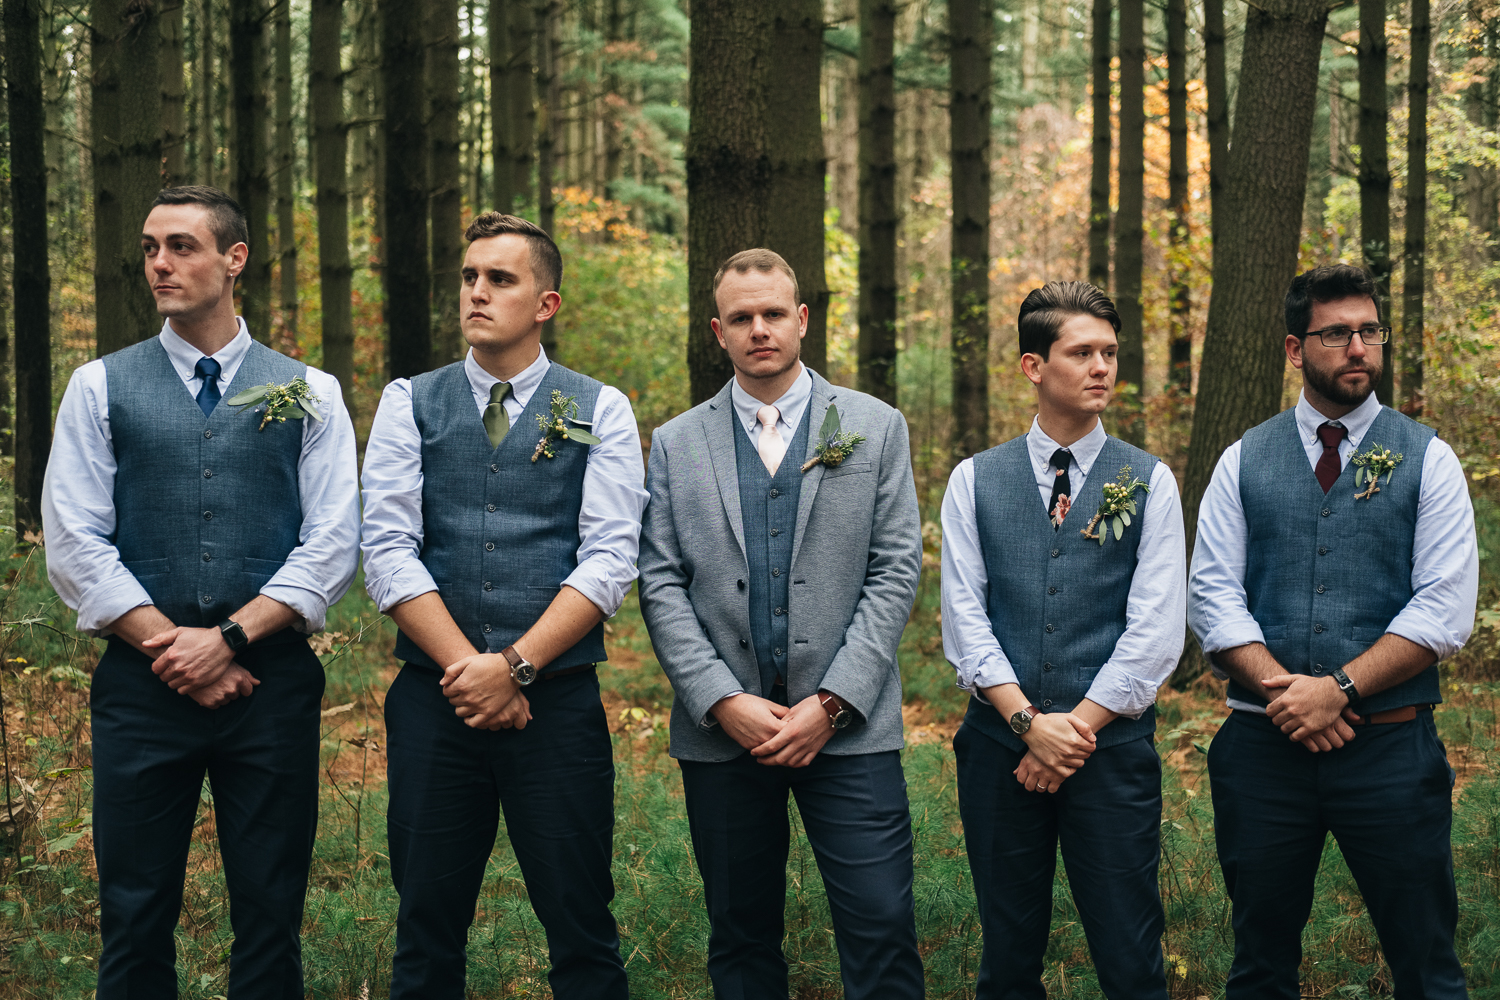 Groom stands with his groomsmen at Oak Openings park near Perrysburg Ohio